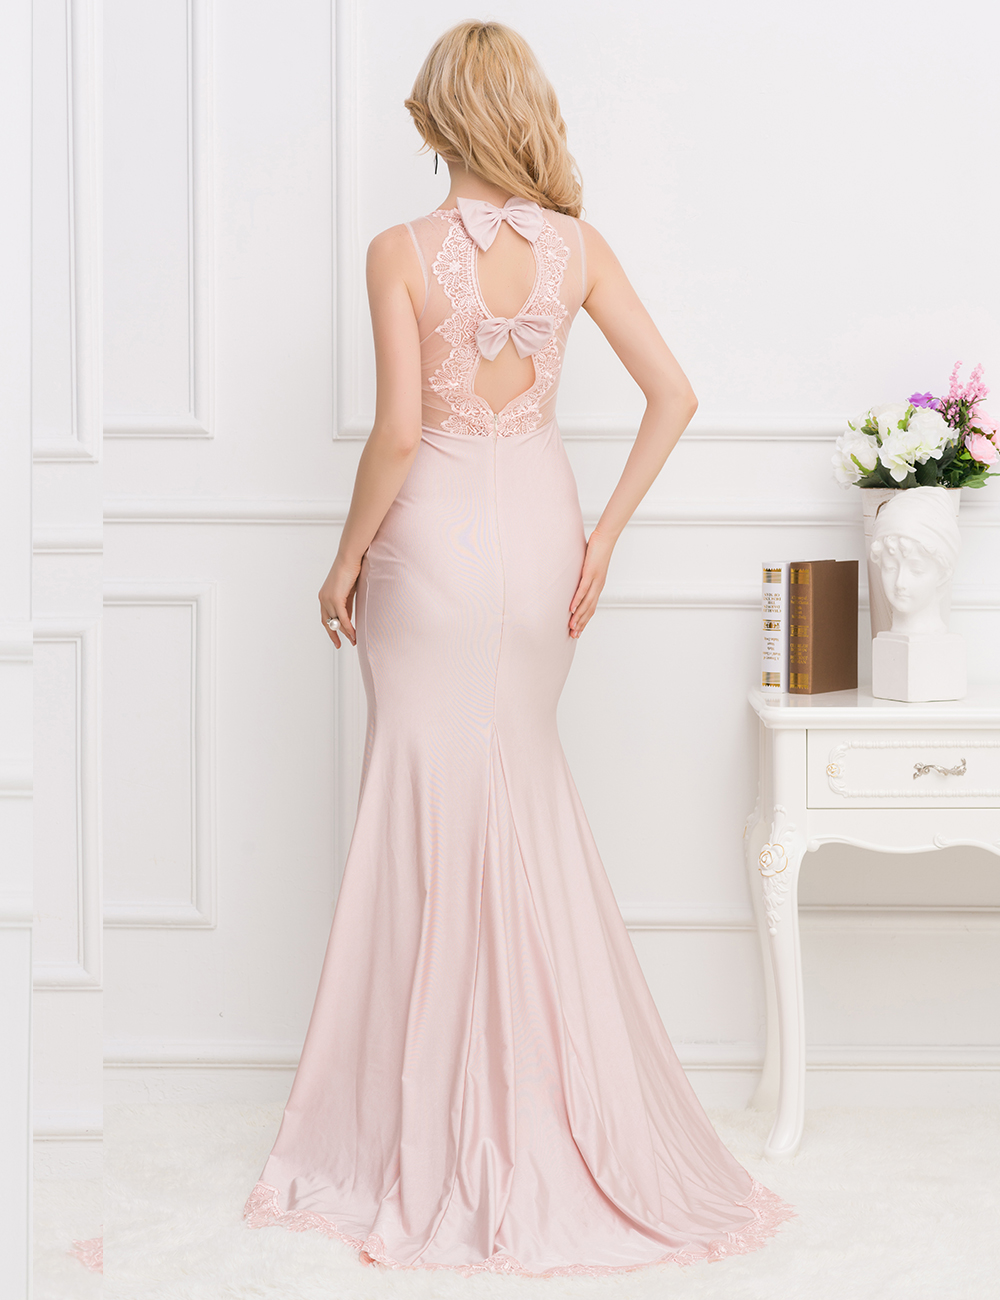 ad29503190ec Best Online Store For Evening Dresses - Aztec Stone and Reclamations